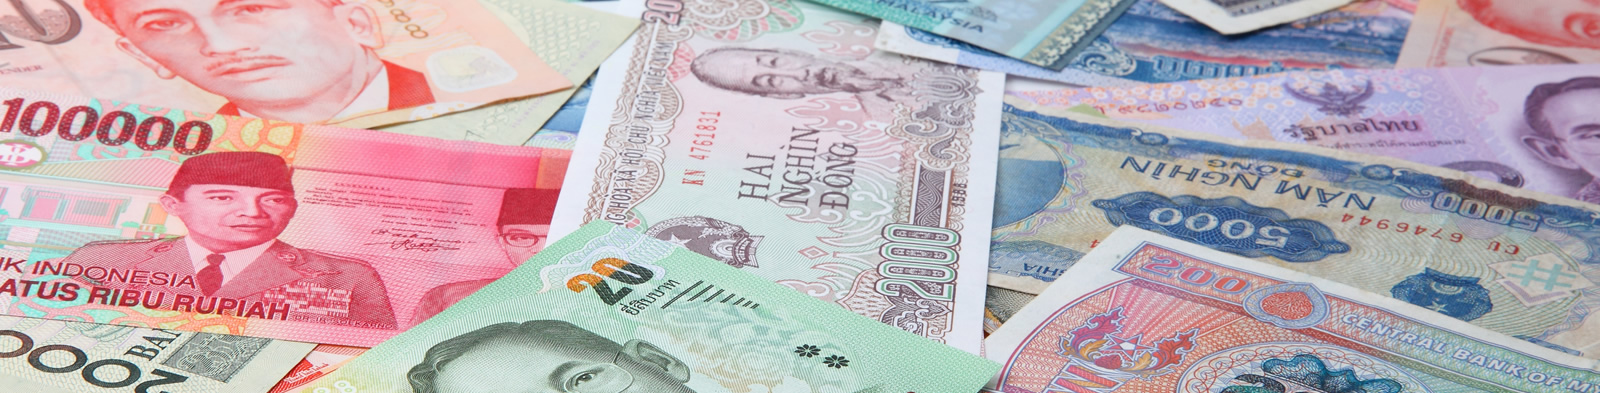 Bank notes from all over Asia